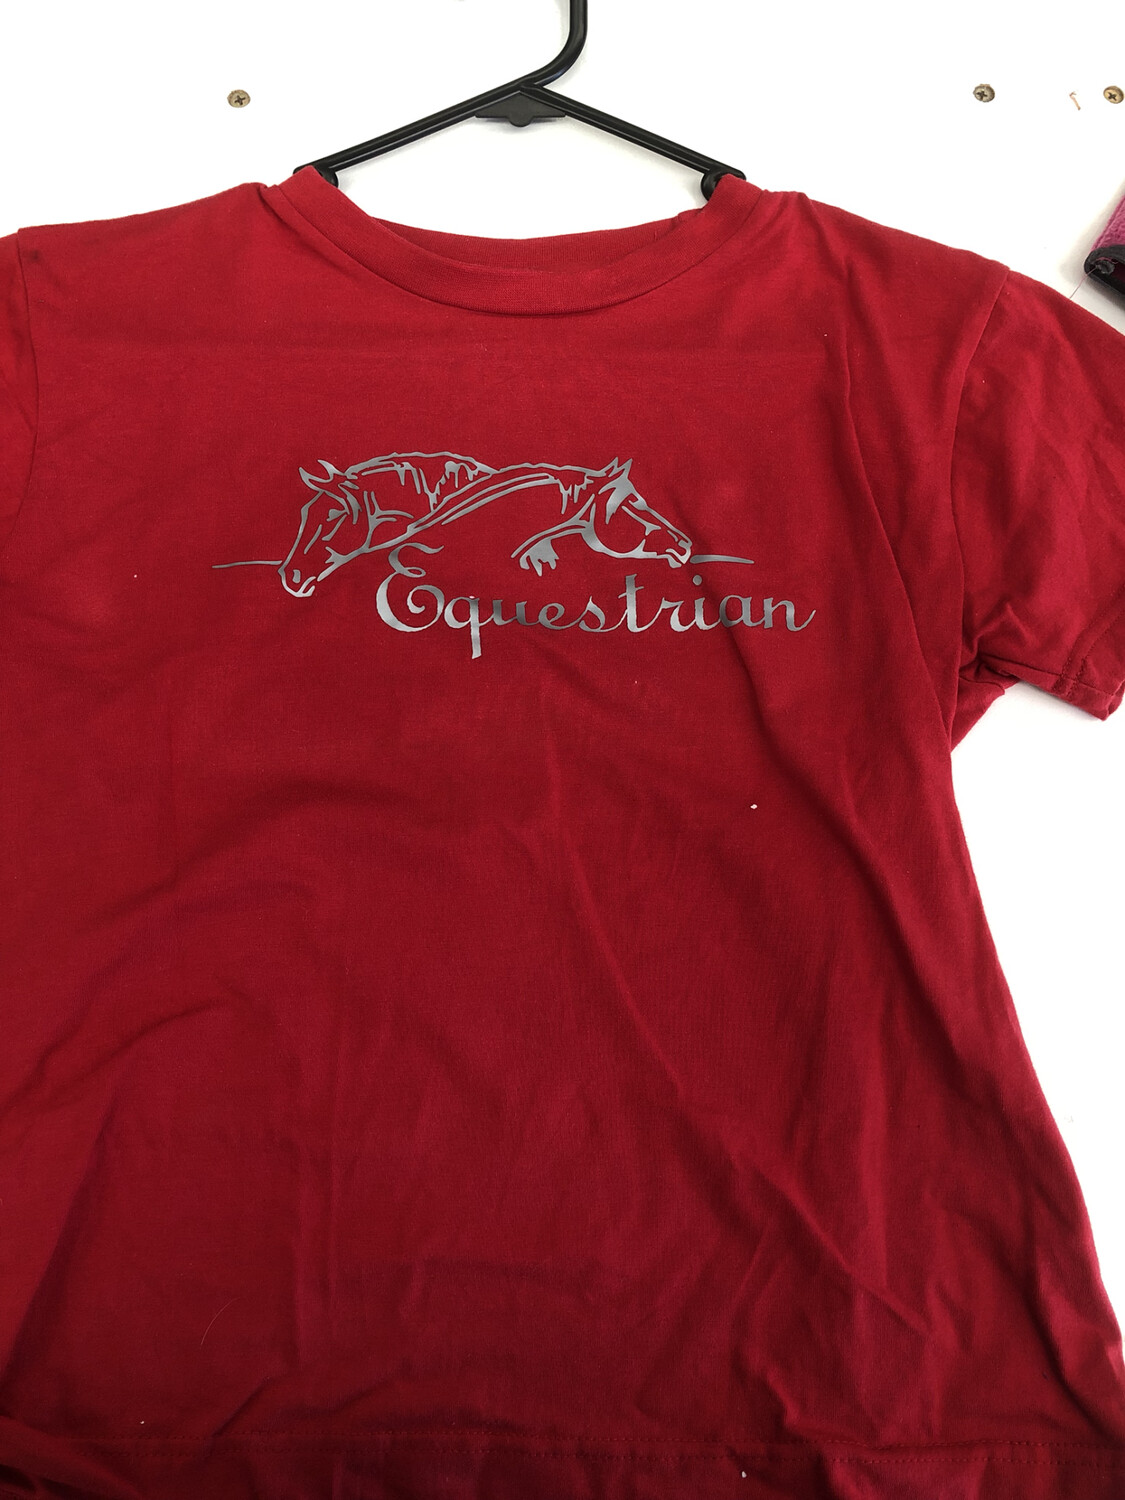 Ladies Equestrian Chose Size/style